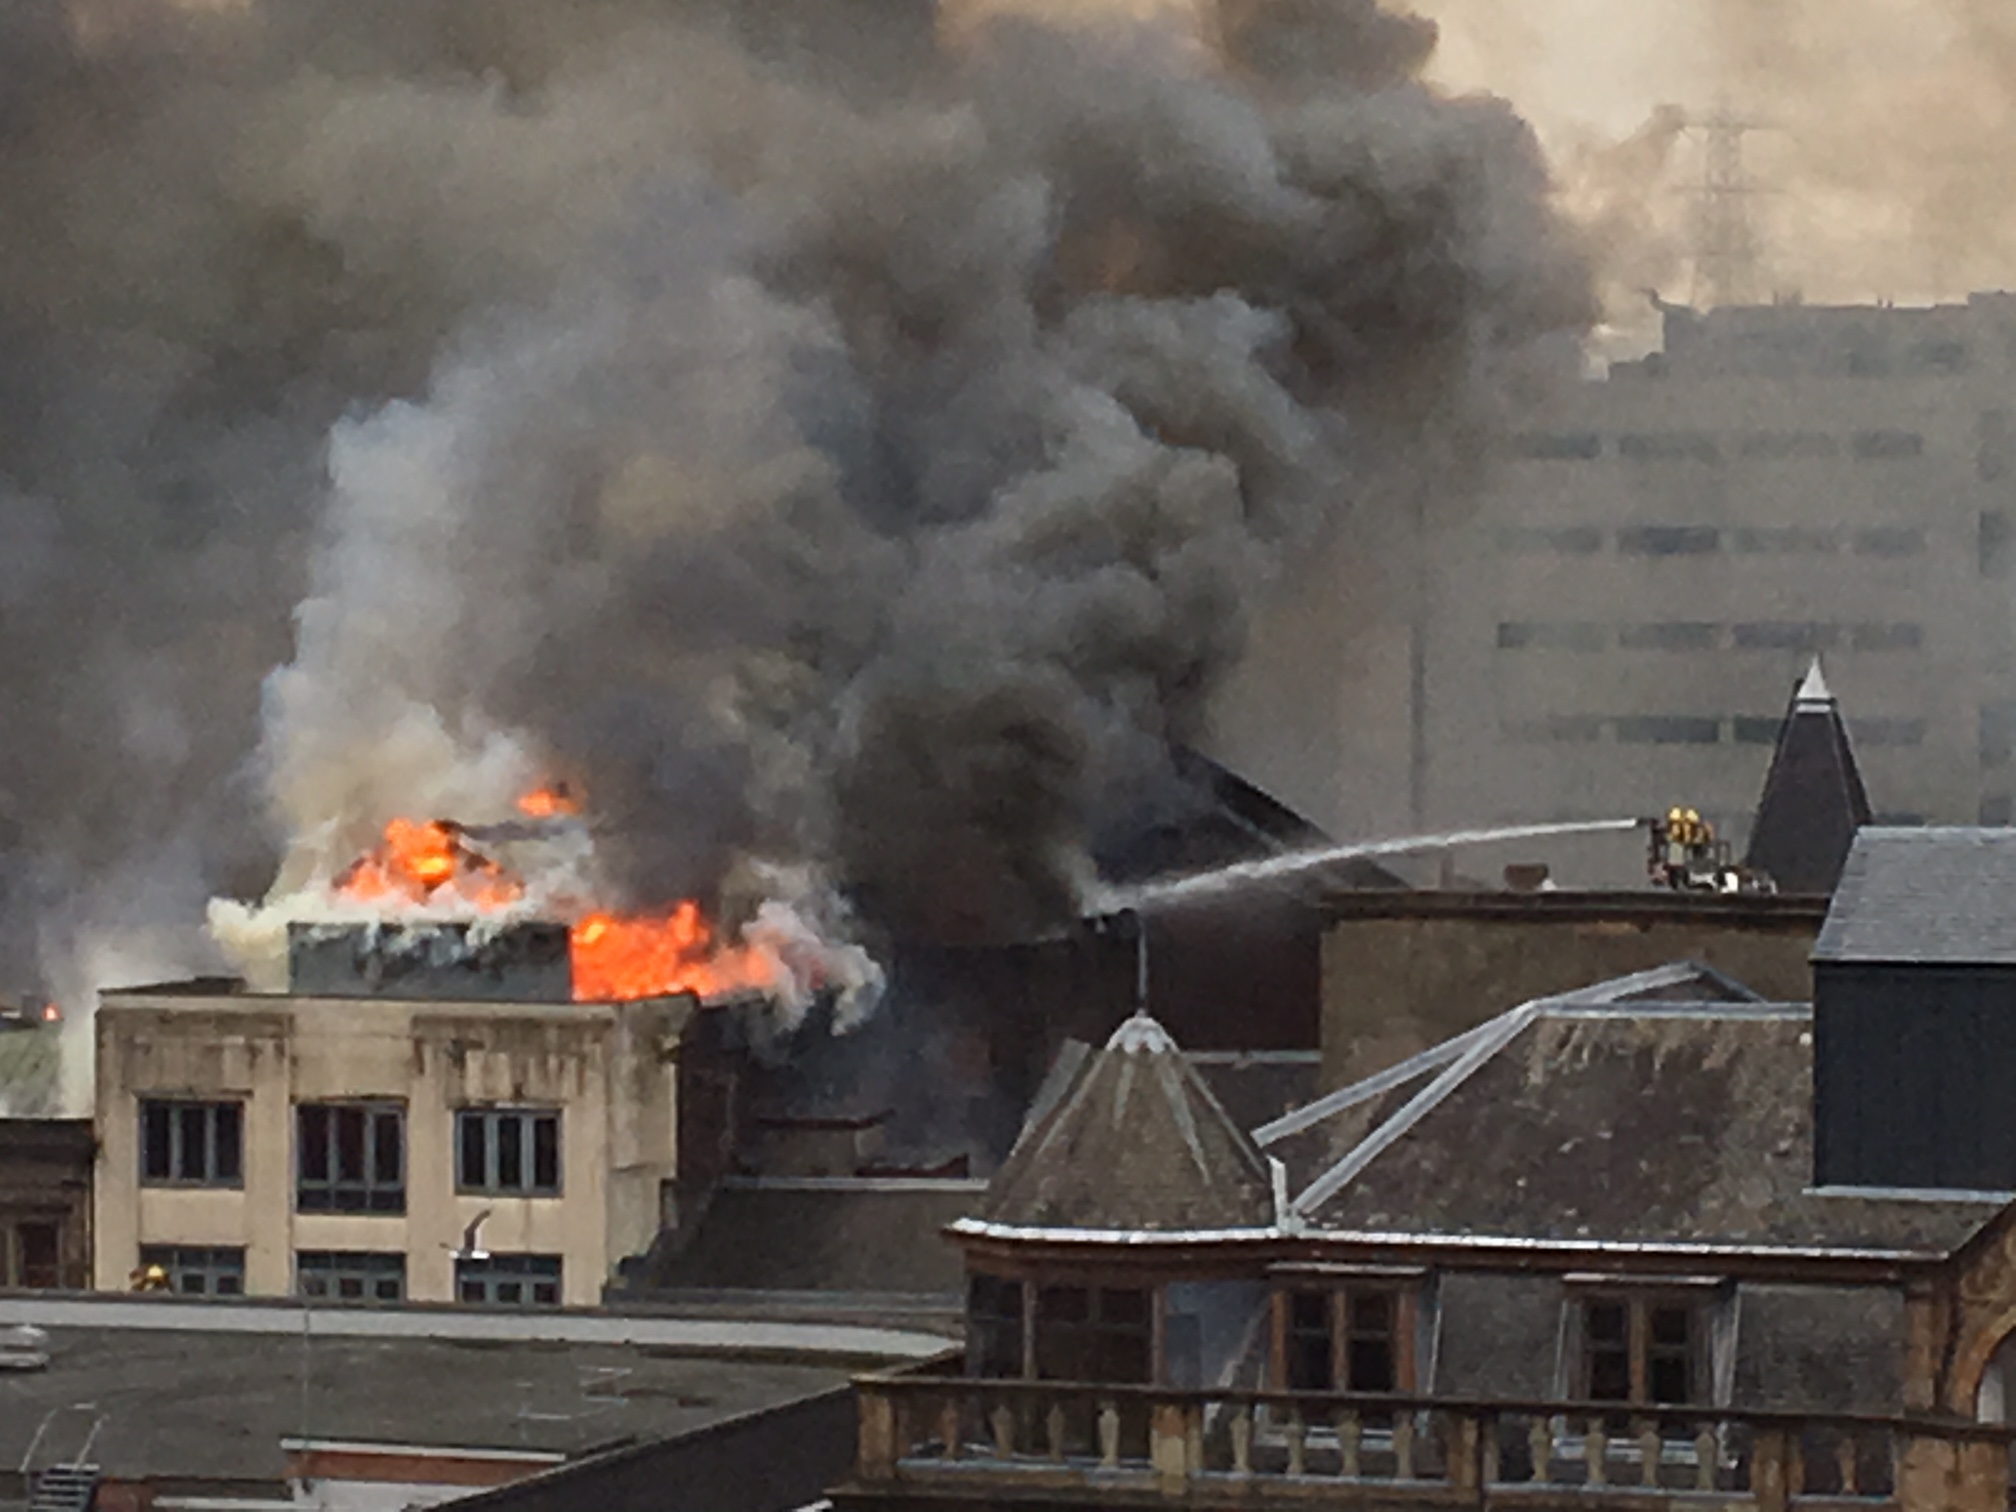 In Pictures: Major fire engulfs buildings on Sauchiehall ...